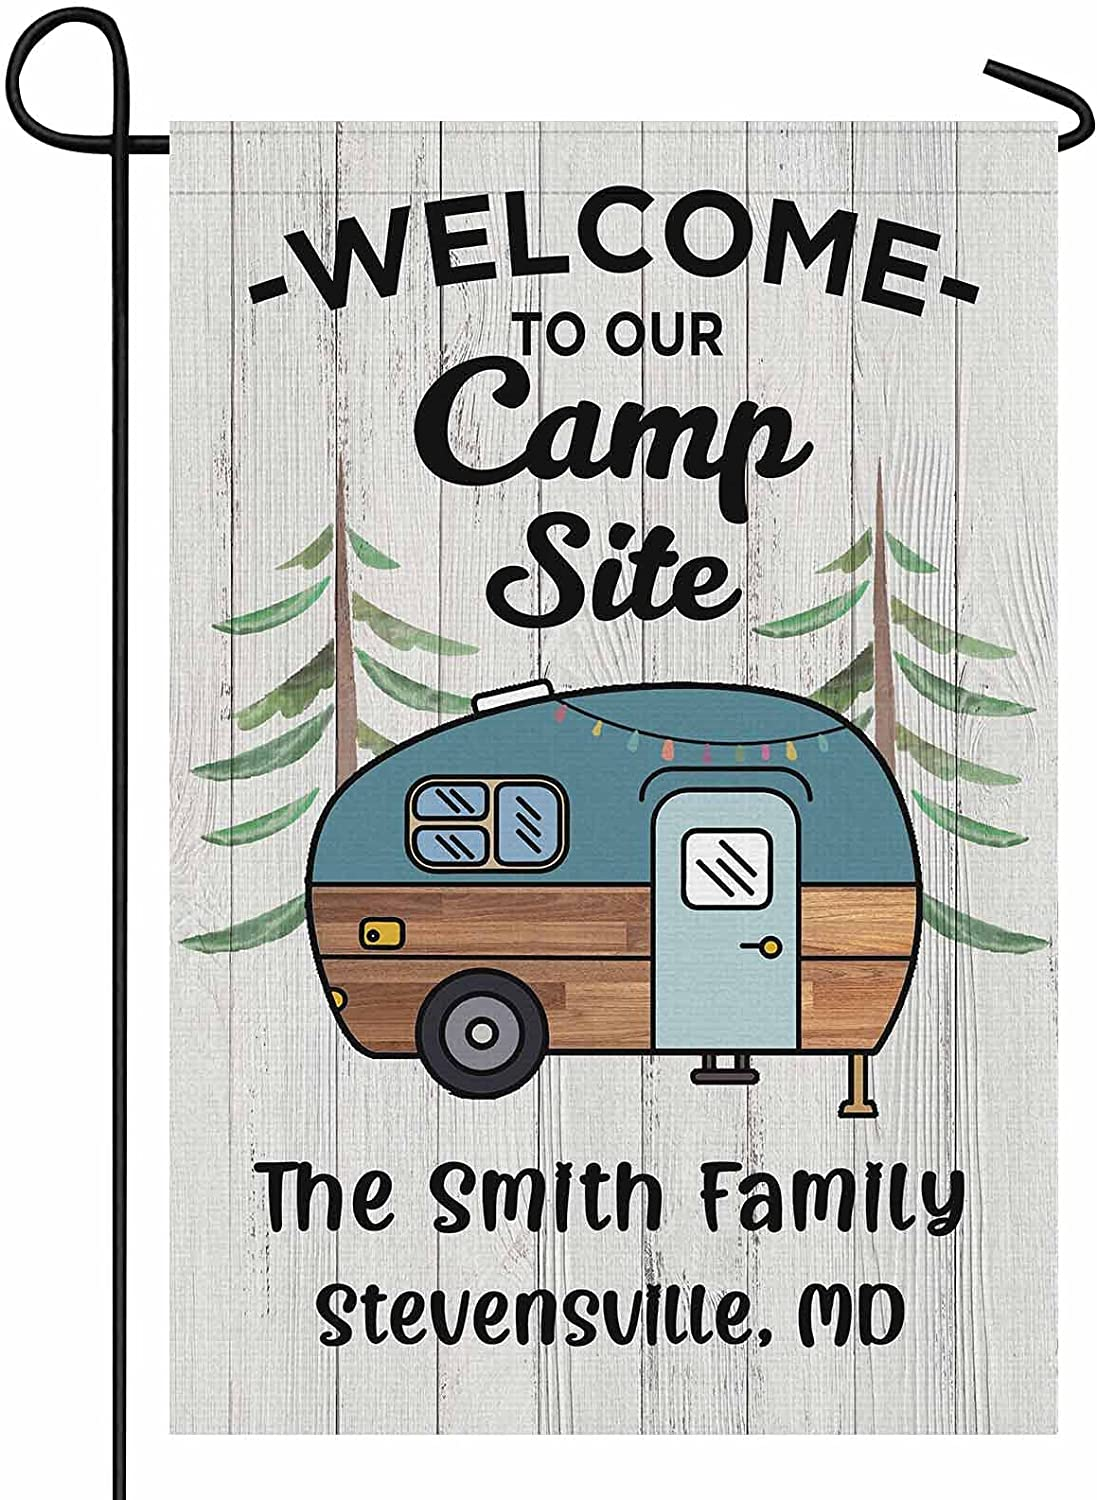 FunStudio Personalized Camping Garden Flag Welcome to Our Campsite Rv Flag for Outdoor Yard House Banner Home Lawn Welcome Decoration 12.5